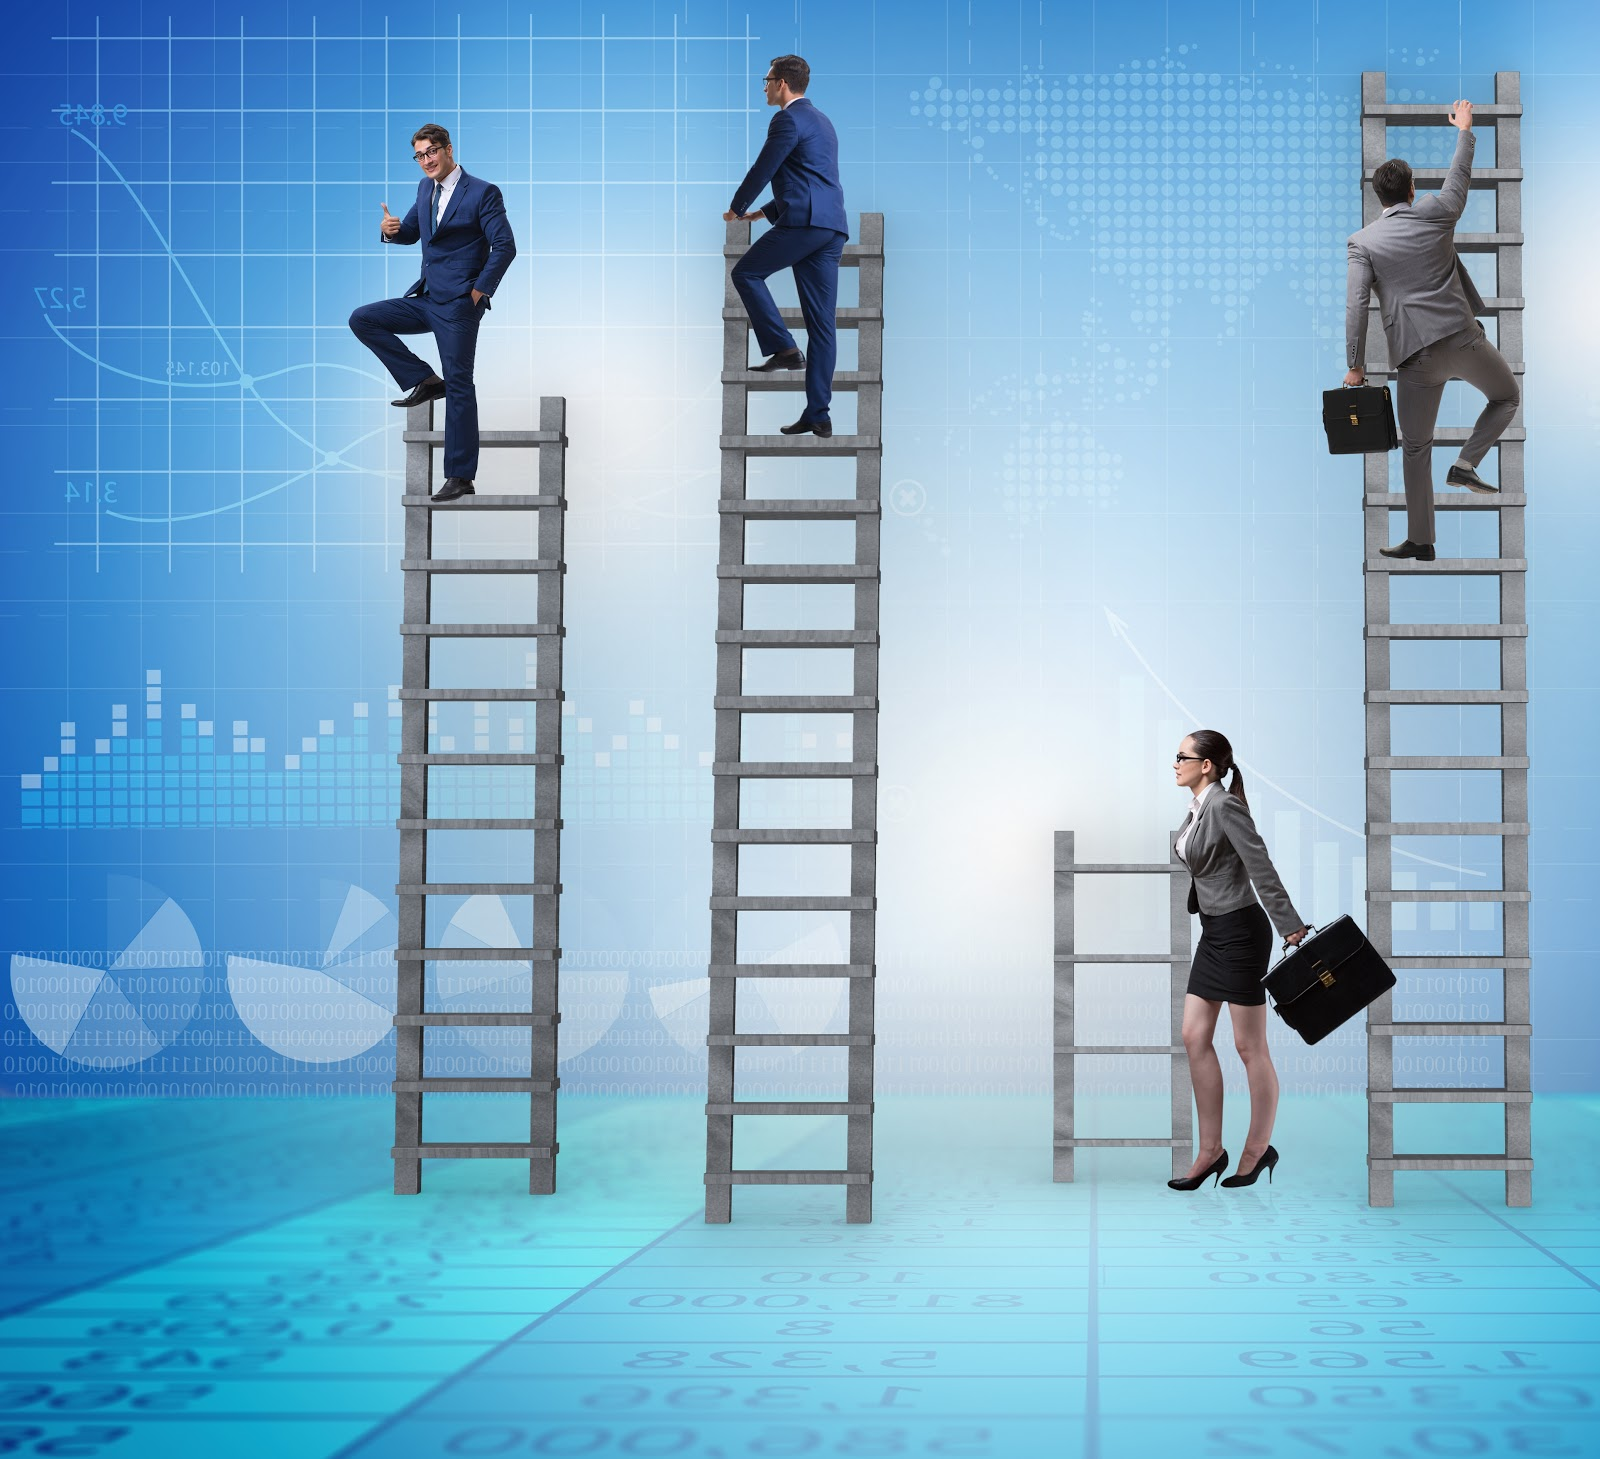 female professional has a shorter ladder than the males